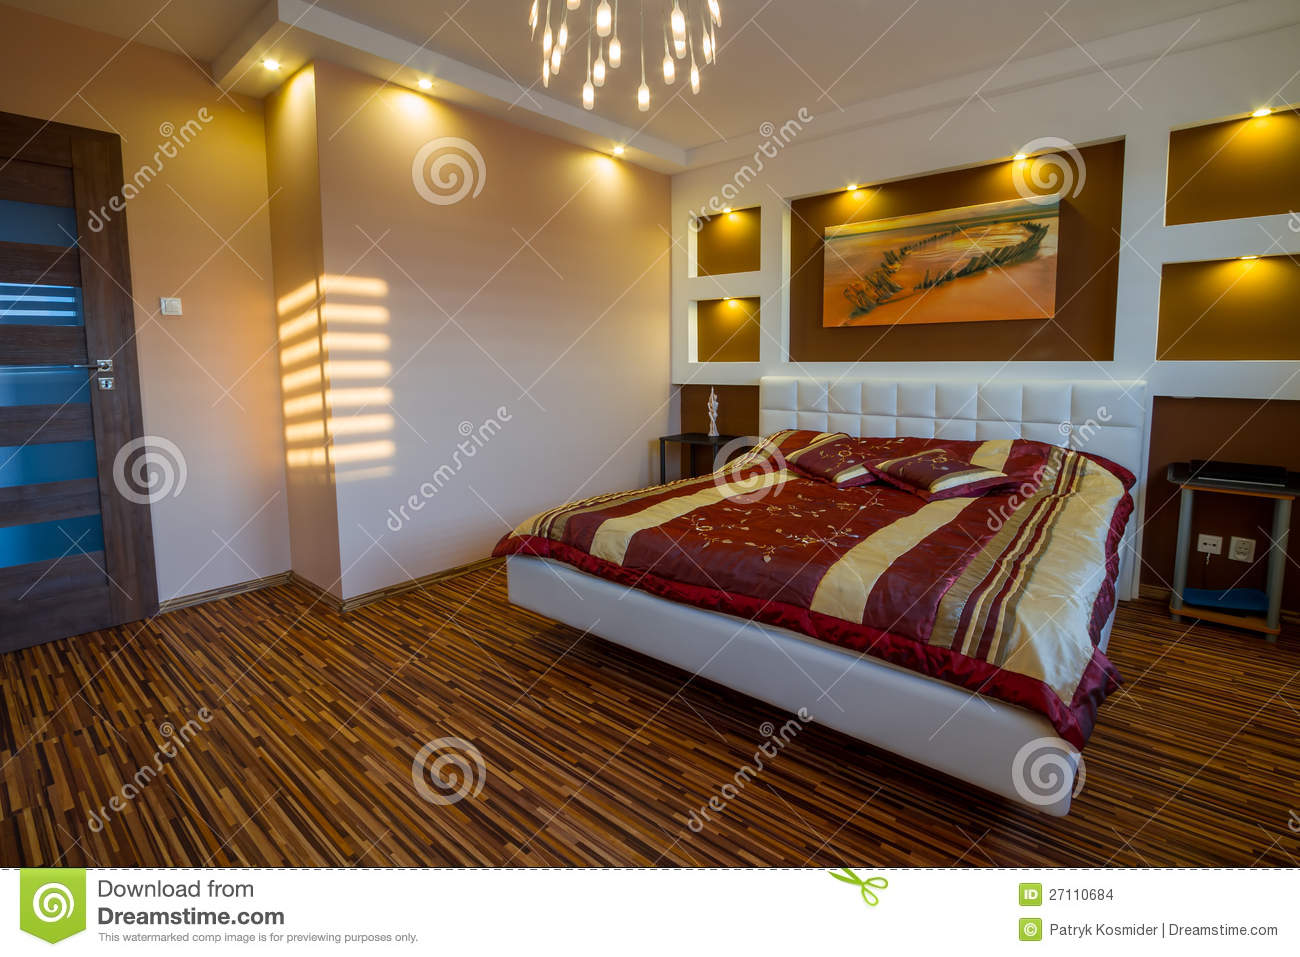 Download Master Bedroom Interior With Spotlights Stock Photo   Image Of  Ceiling, Decoration: 27110684